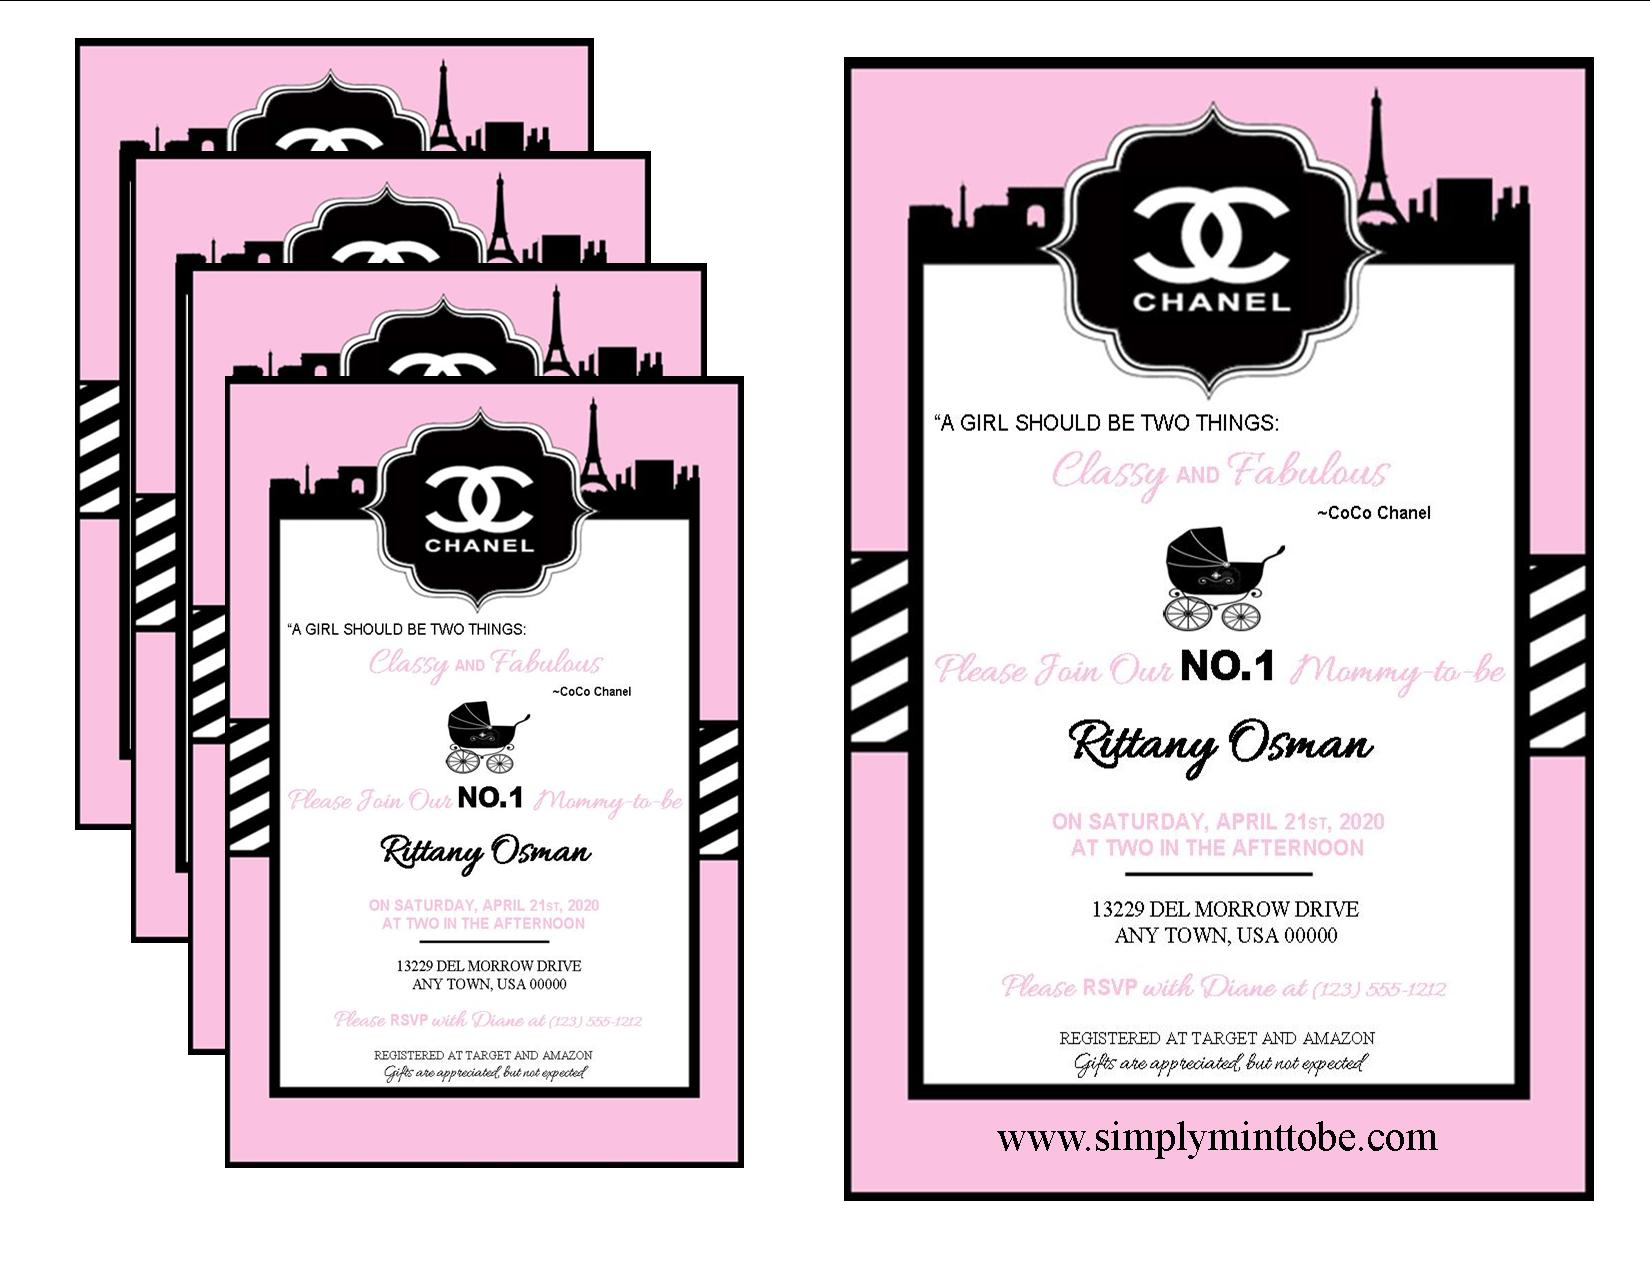 Coco chanel inspired white and pink baby shower invitations coco chanel inspired white and pink baby shower invitations personalized to your specifications for all occasions weddings bridal showers baby showers filmwisefo